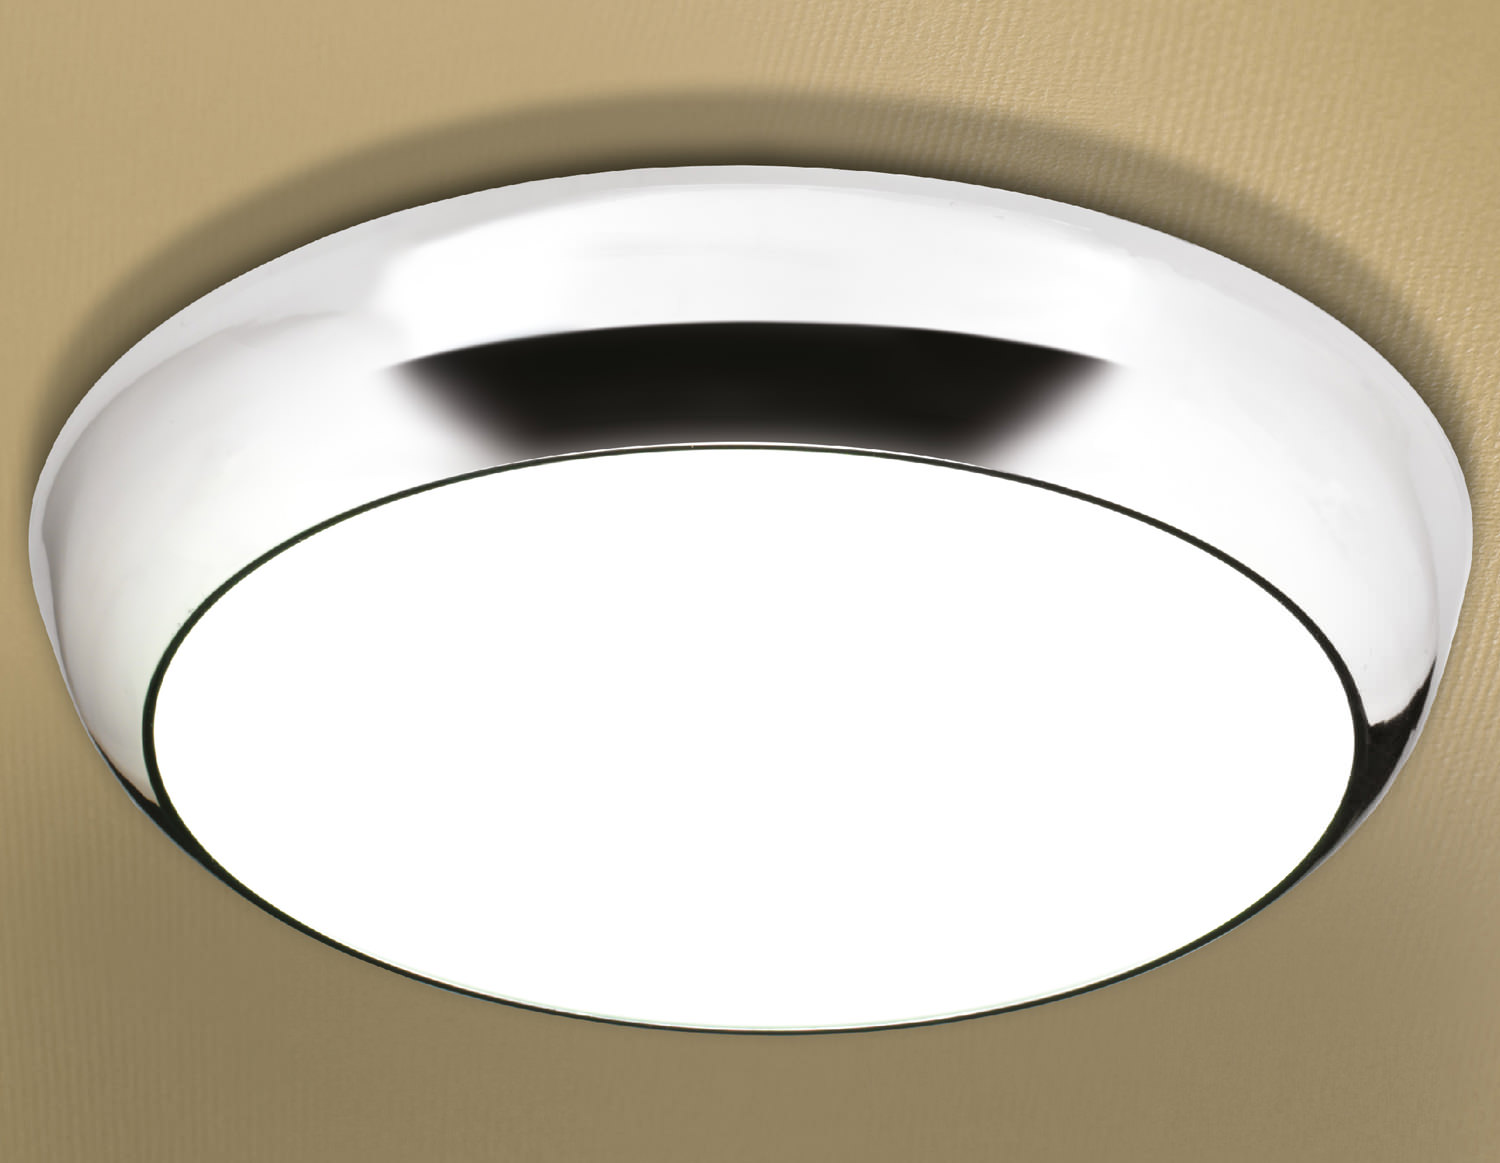 Kinetic led ceiling light hib kinetic led ceiling light mozeypictures Image collections